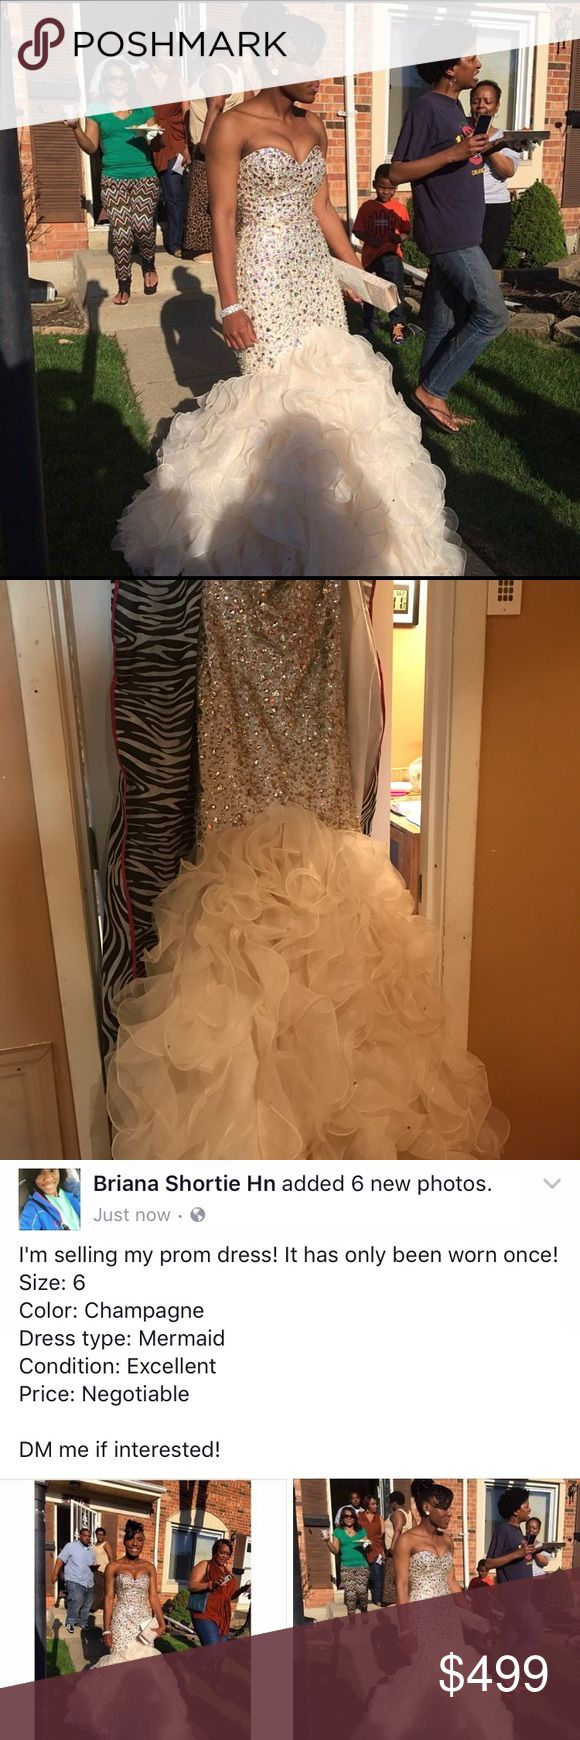 Mori lee Mermaid Prom Dress Condition: Excellent; Color: Champagne; Size:6/8   ONLY BEEN WORN ONCE!!!!! Mori Lee Dresses Prom